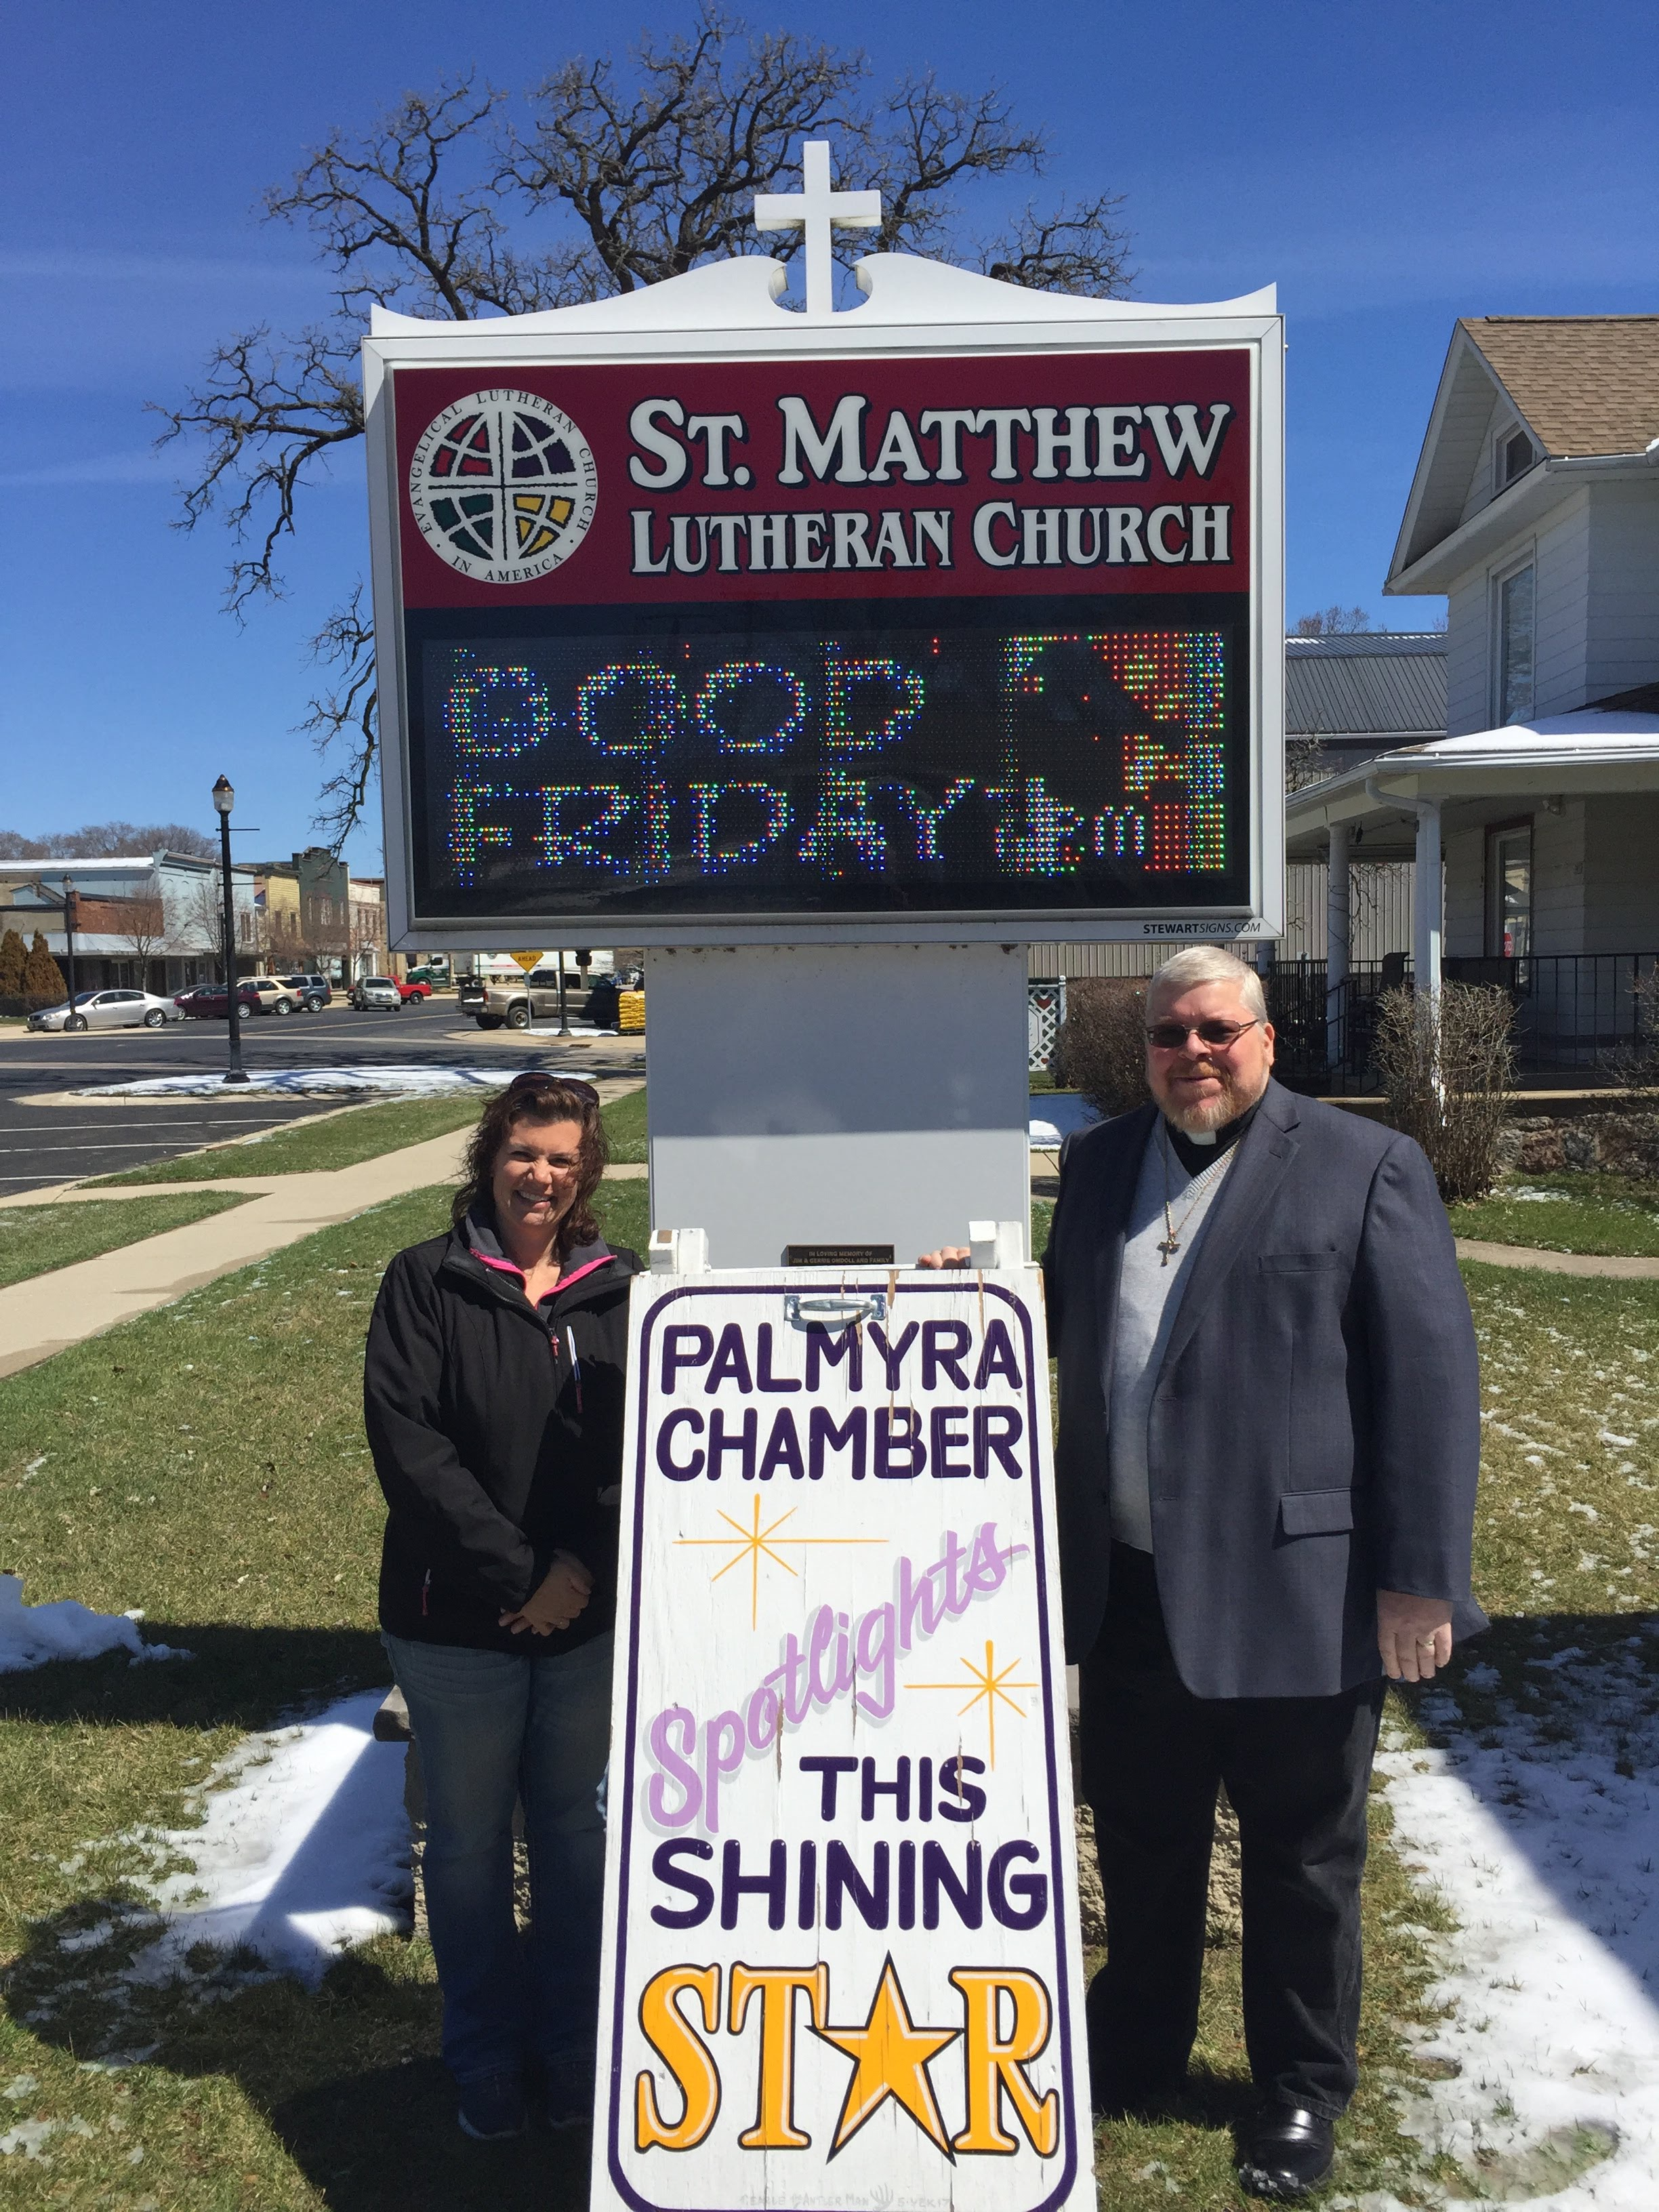 St Matthew Lutheran Church, Celebrating 175 Anniversary in August